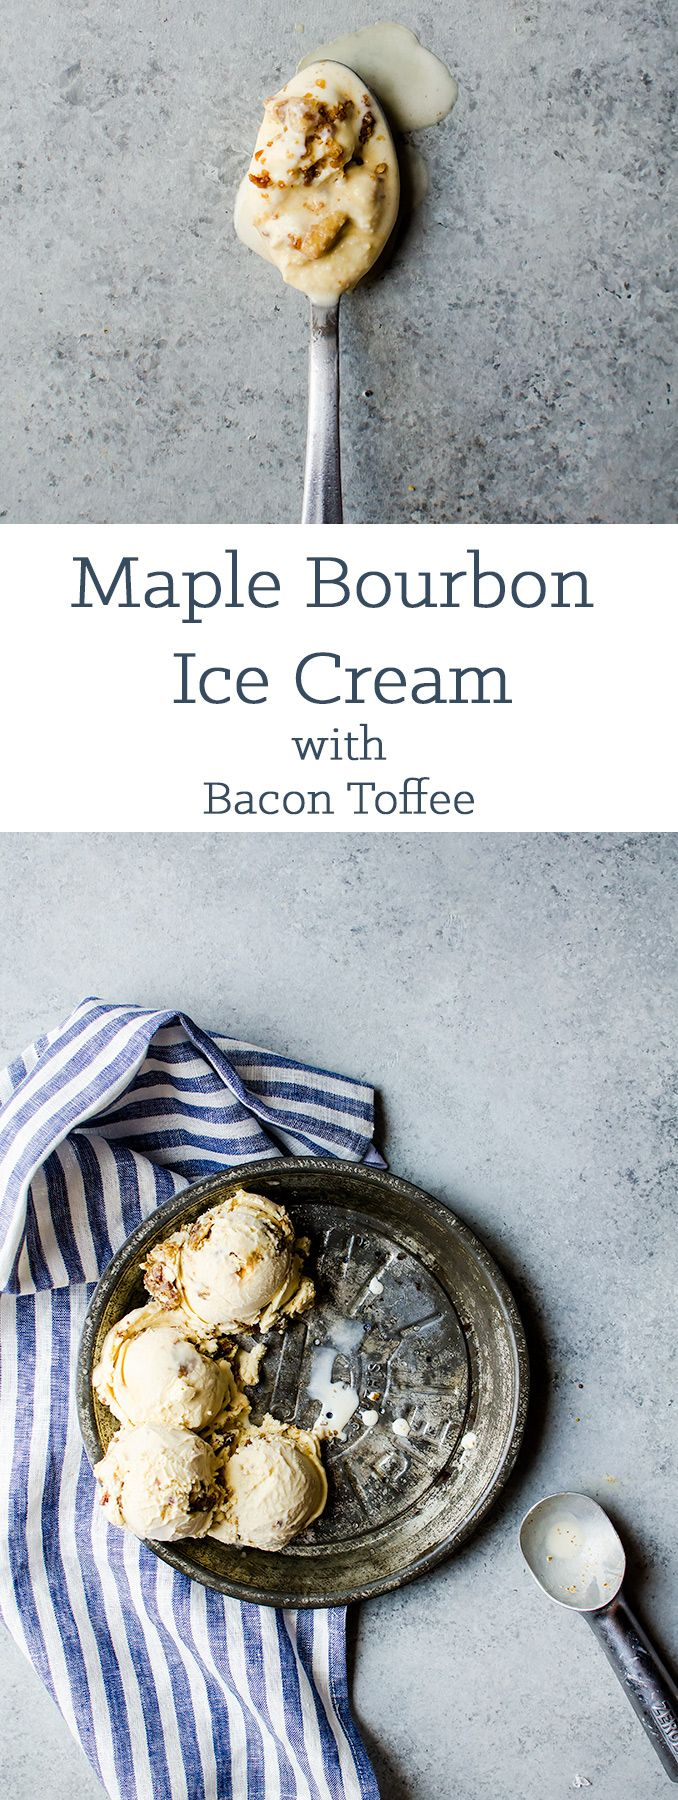 There is nothing better than this maple ice cream with bourbon and bacon toffee bits.